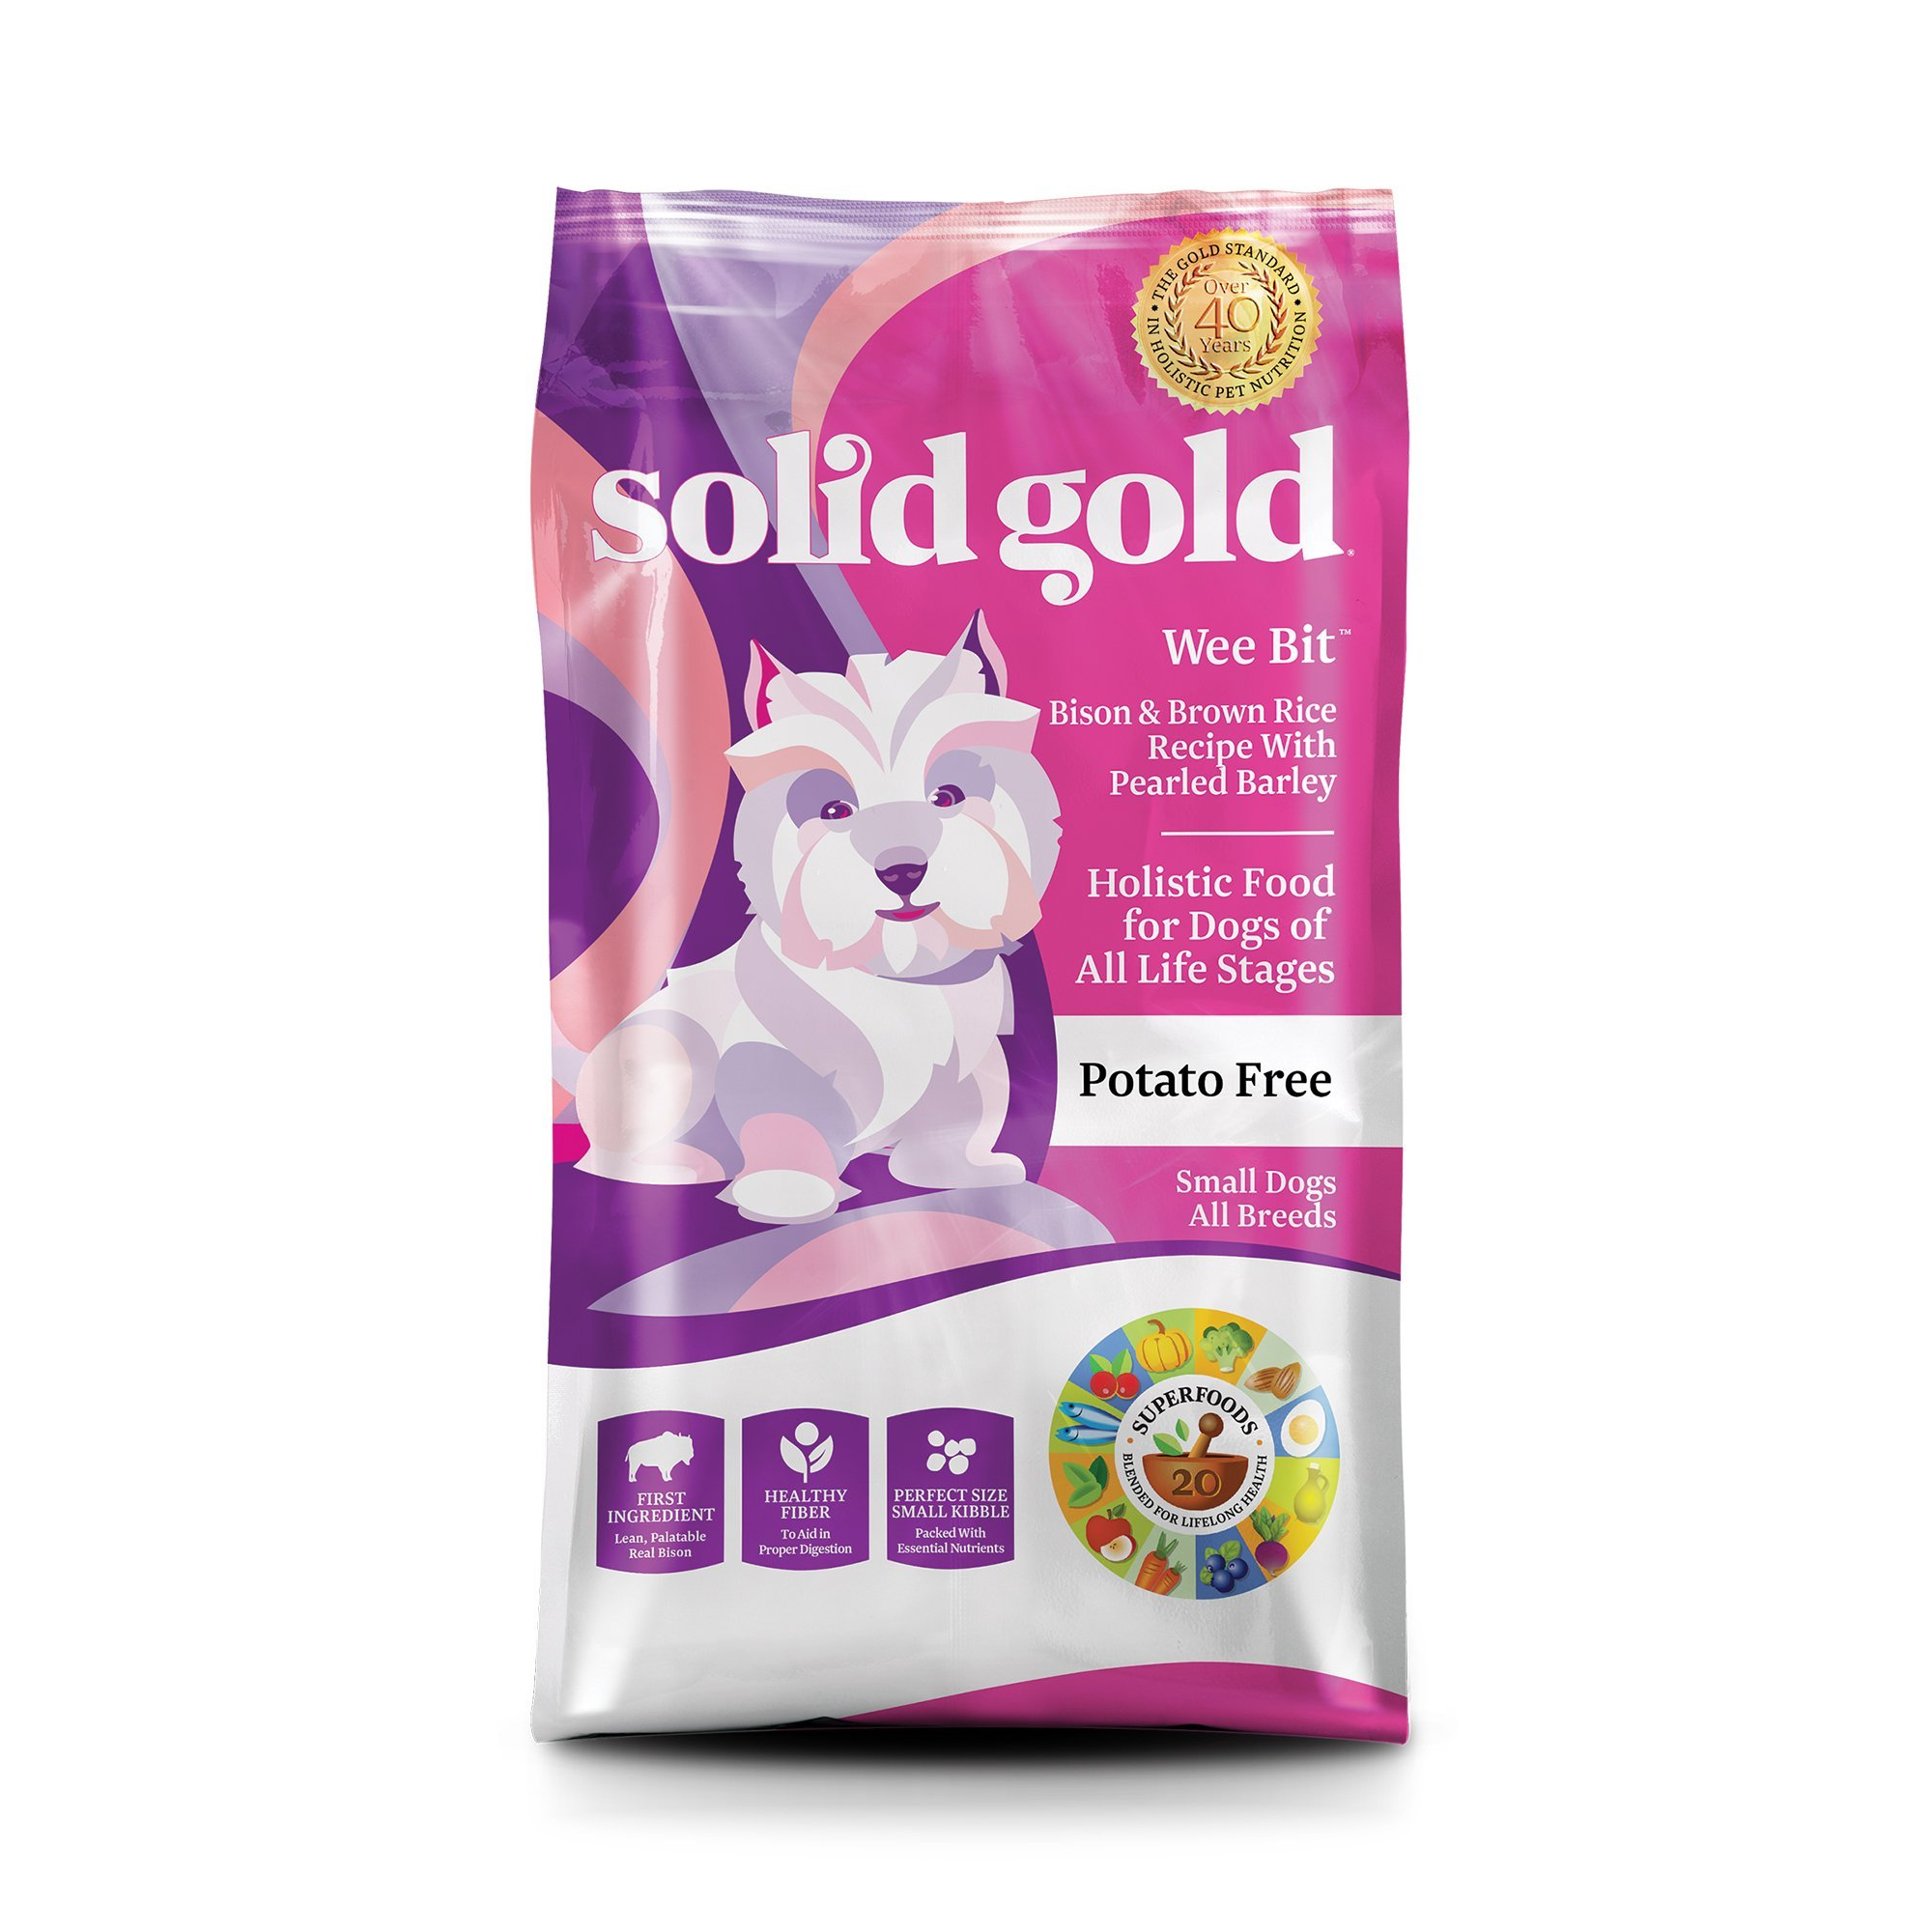 Solid Gold Wee Bit Holistic Dry Dog Food, Bison and Brown Rice with Pearled Barley, 12lbs, 12 LBS